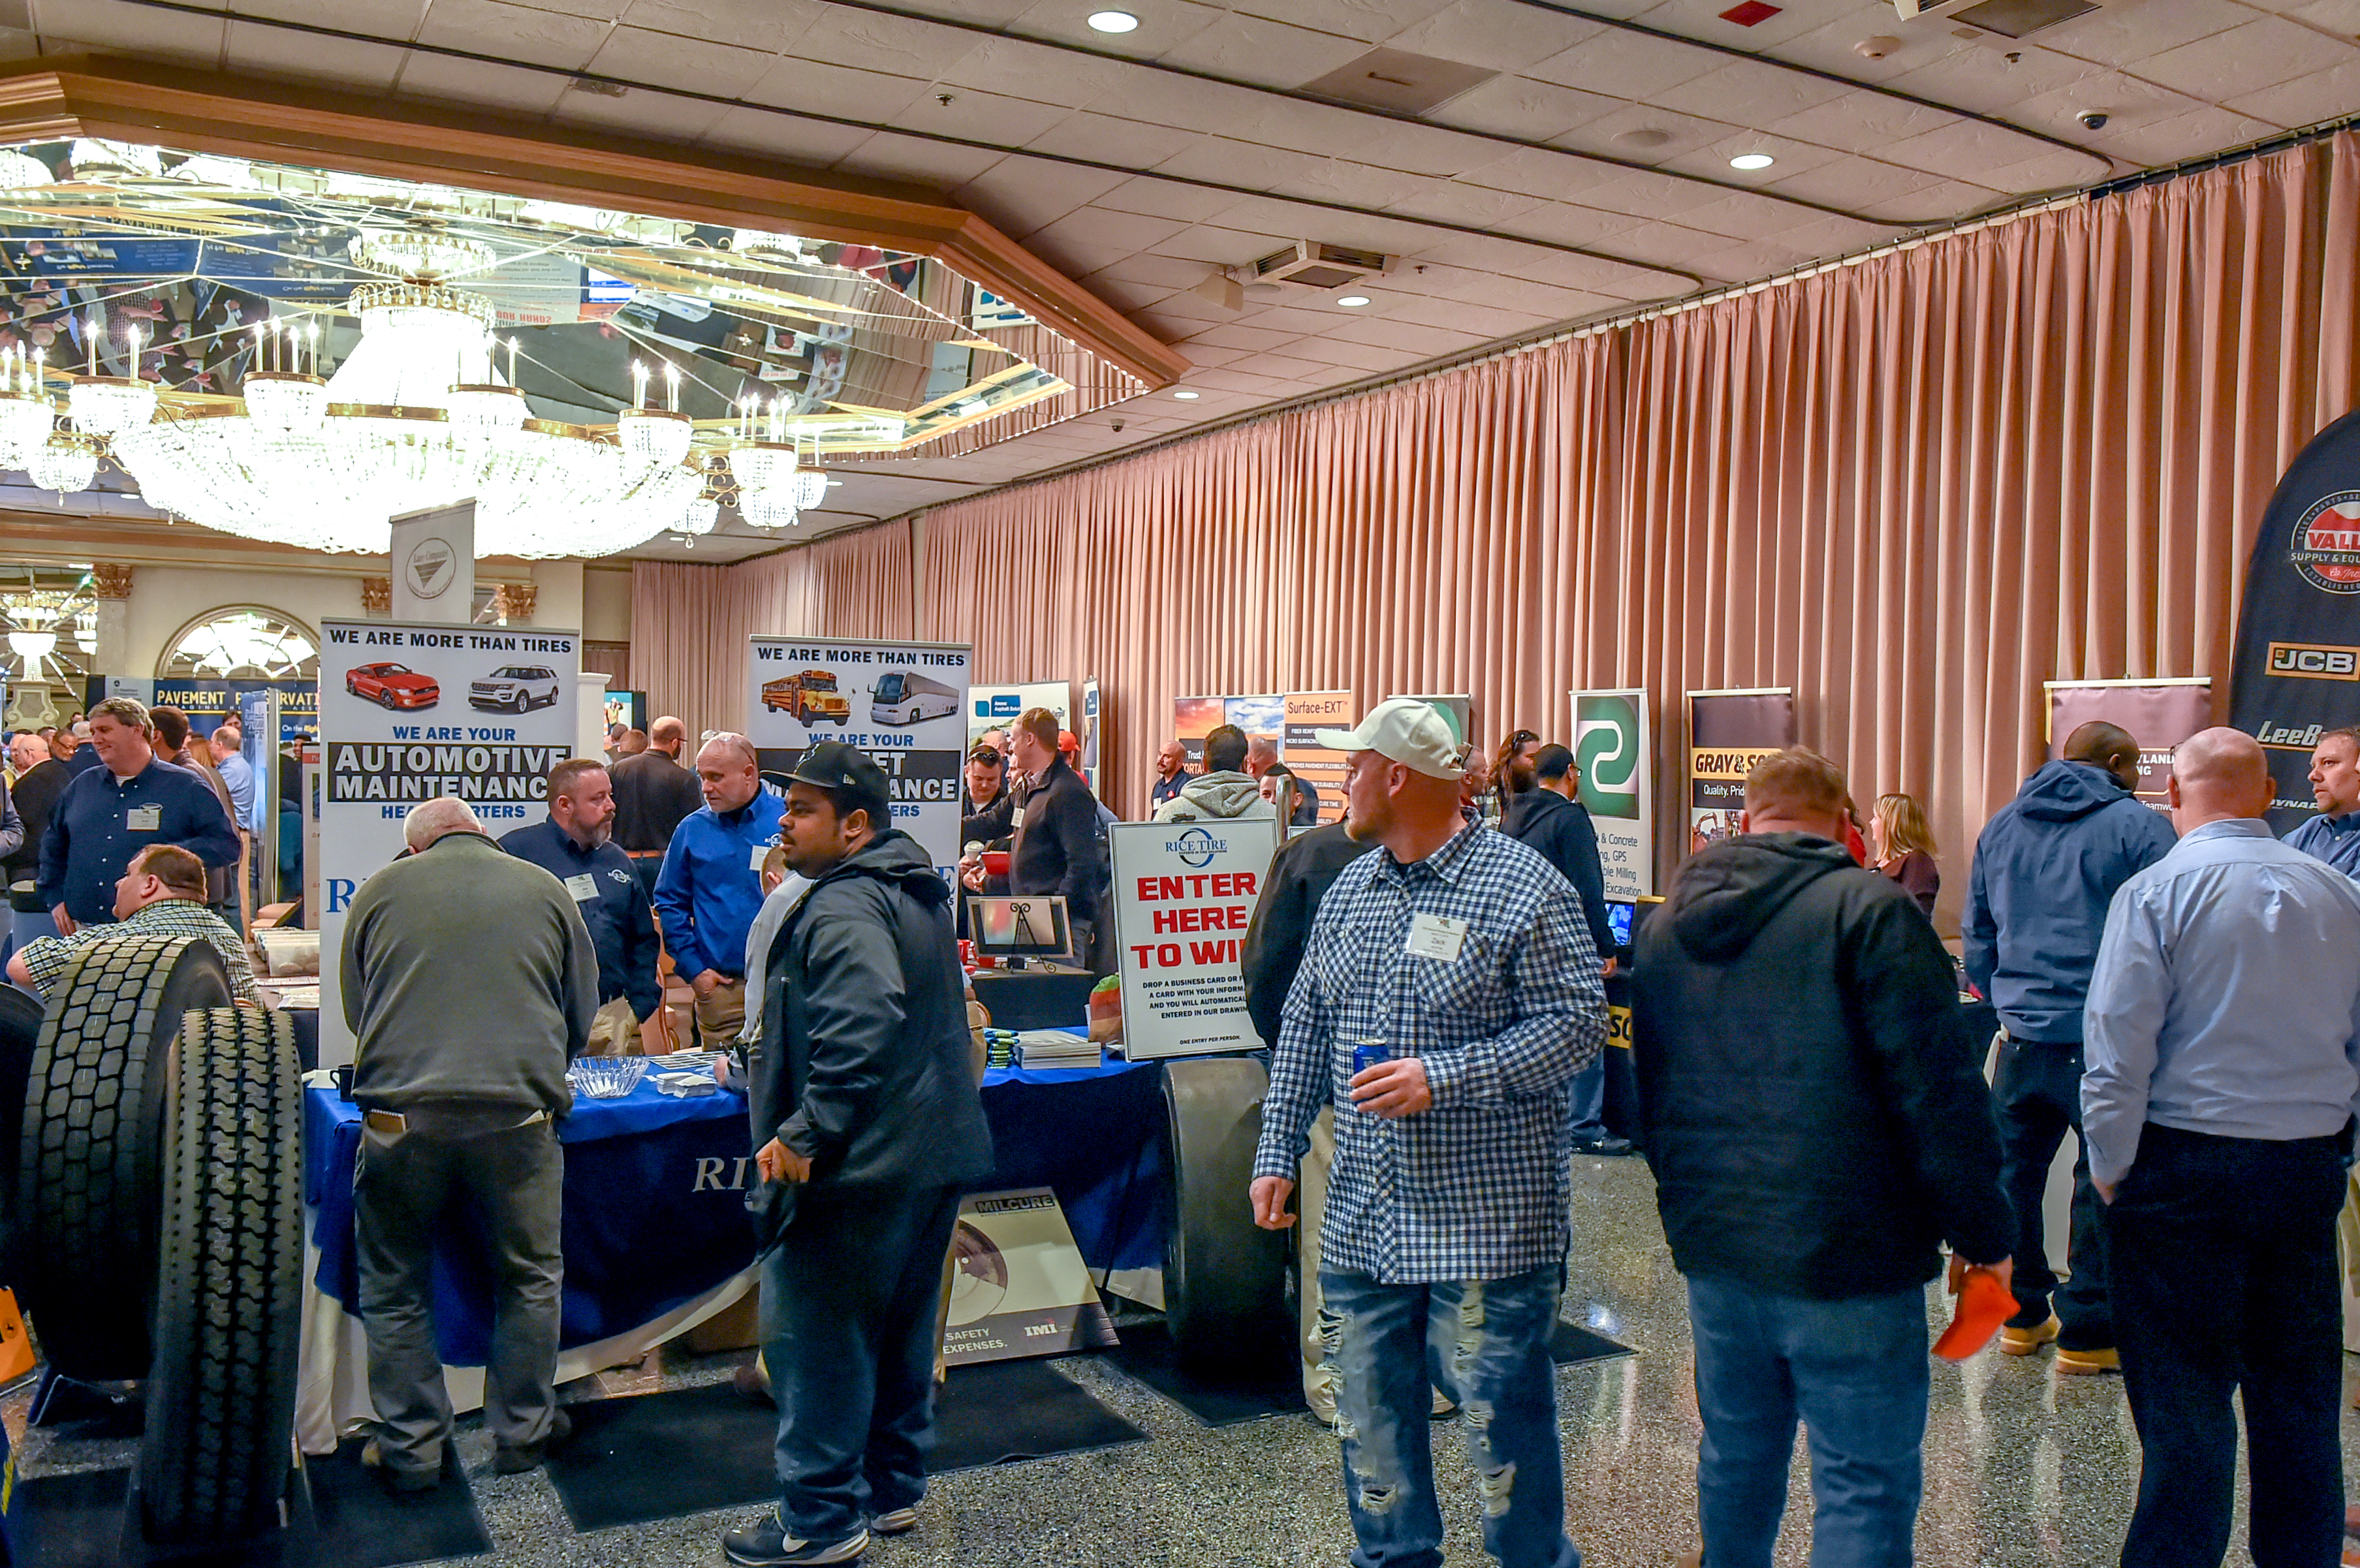 57th Annual MAA Paving Conference | The Maryland Asphalt Association